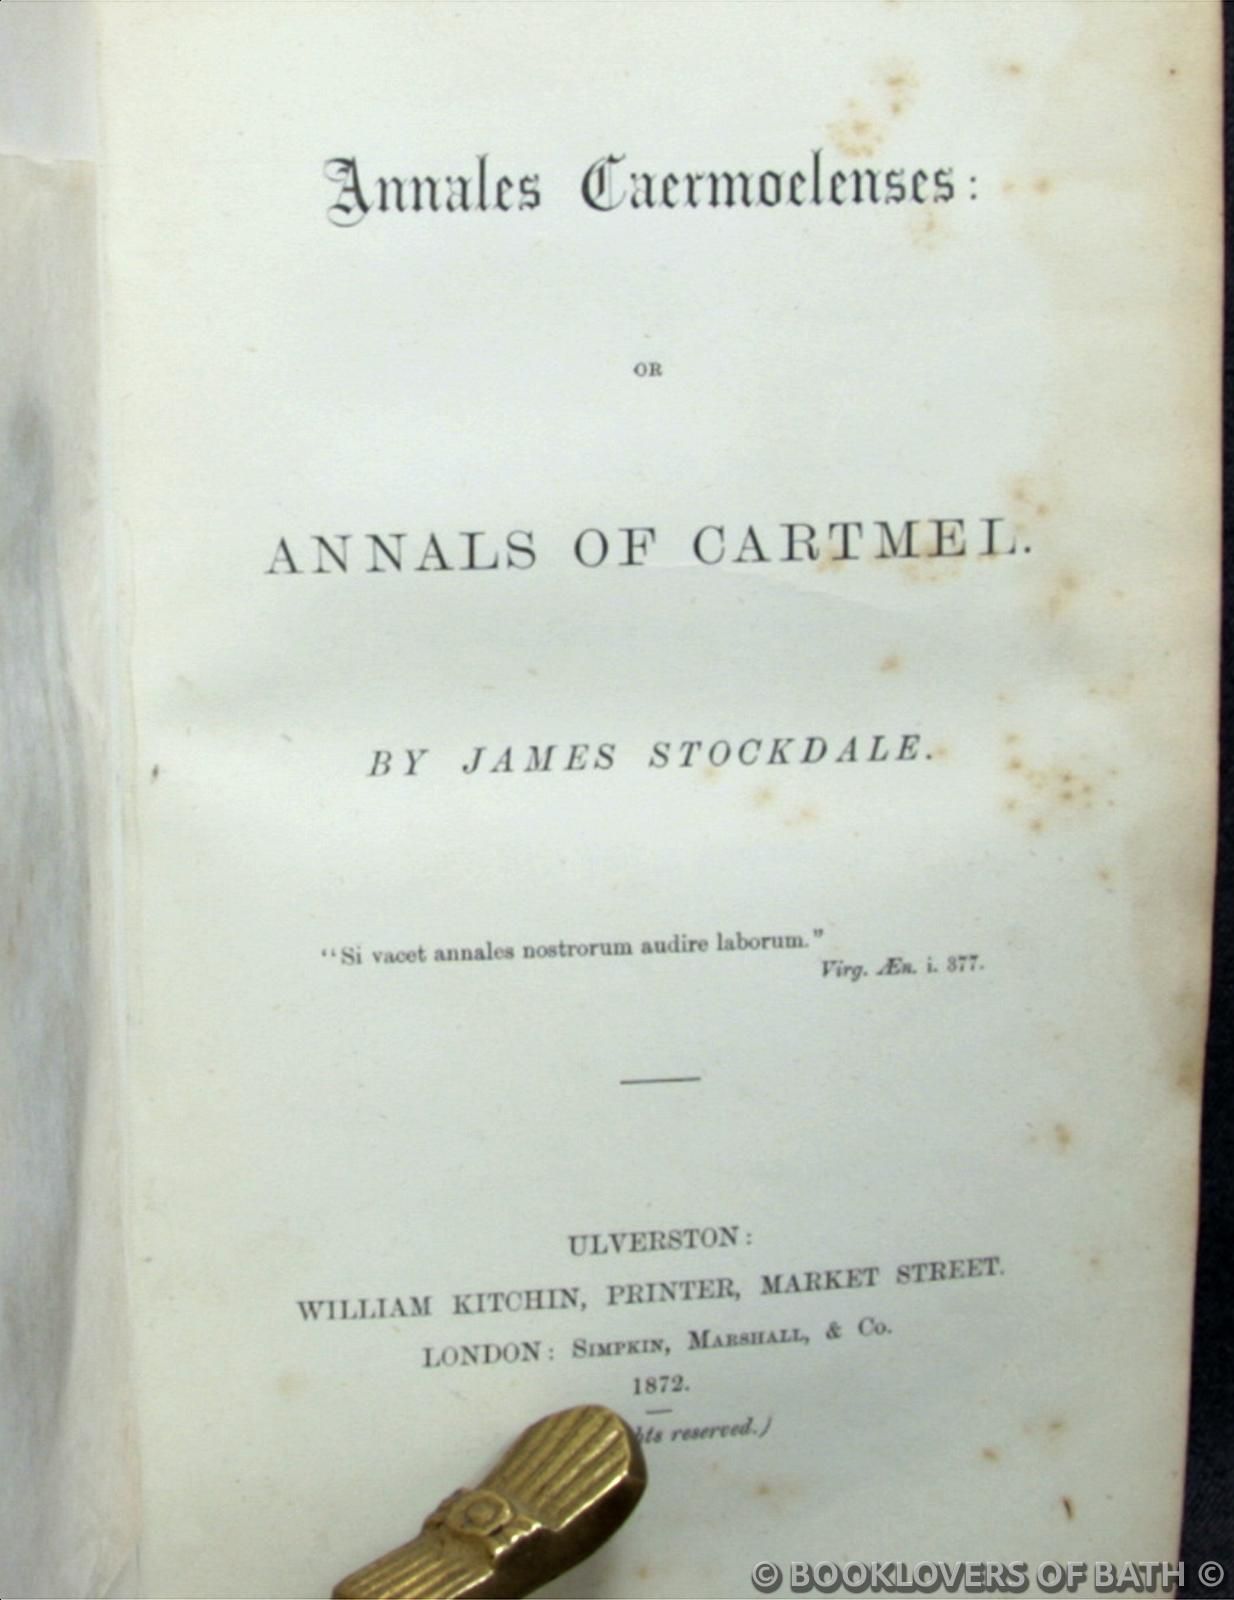 Annales Caermoclenes: Or, Annals of Cartmel James Stockdale